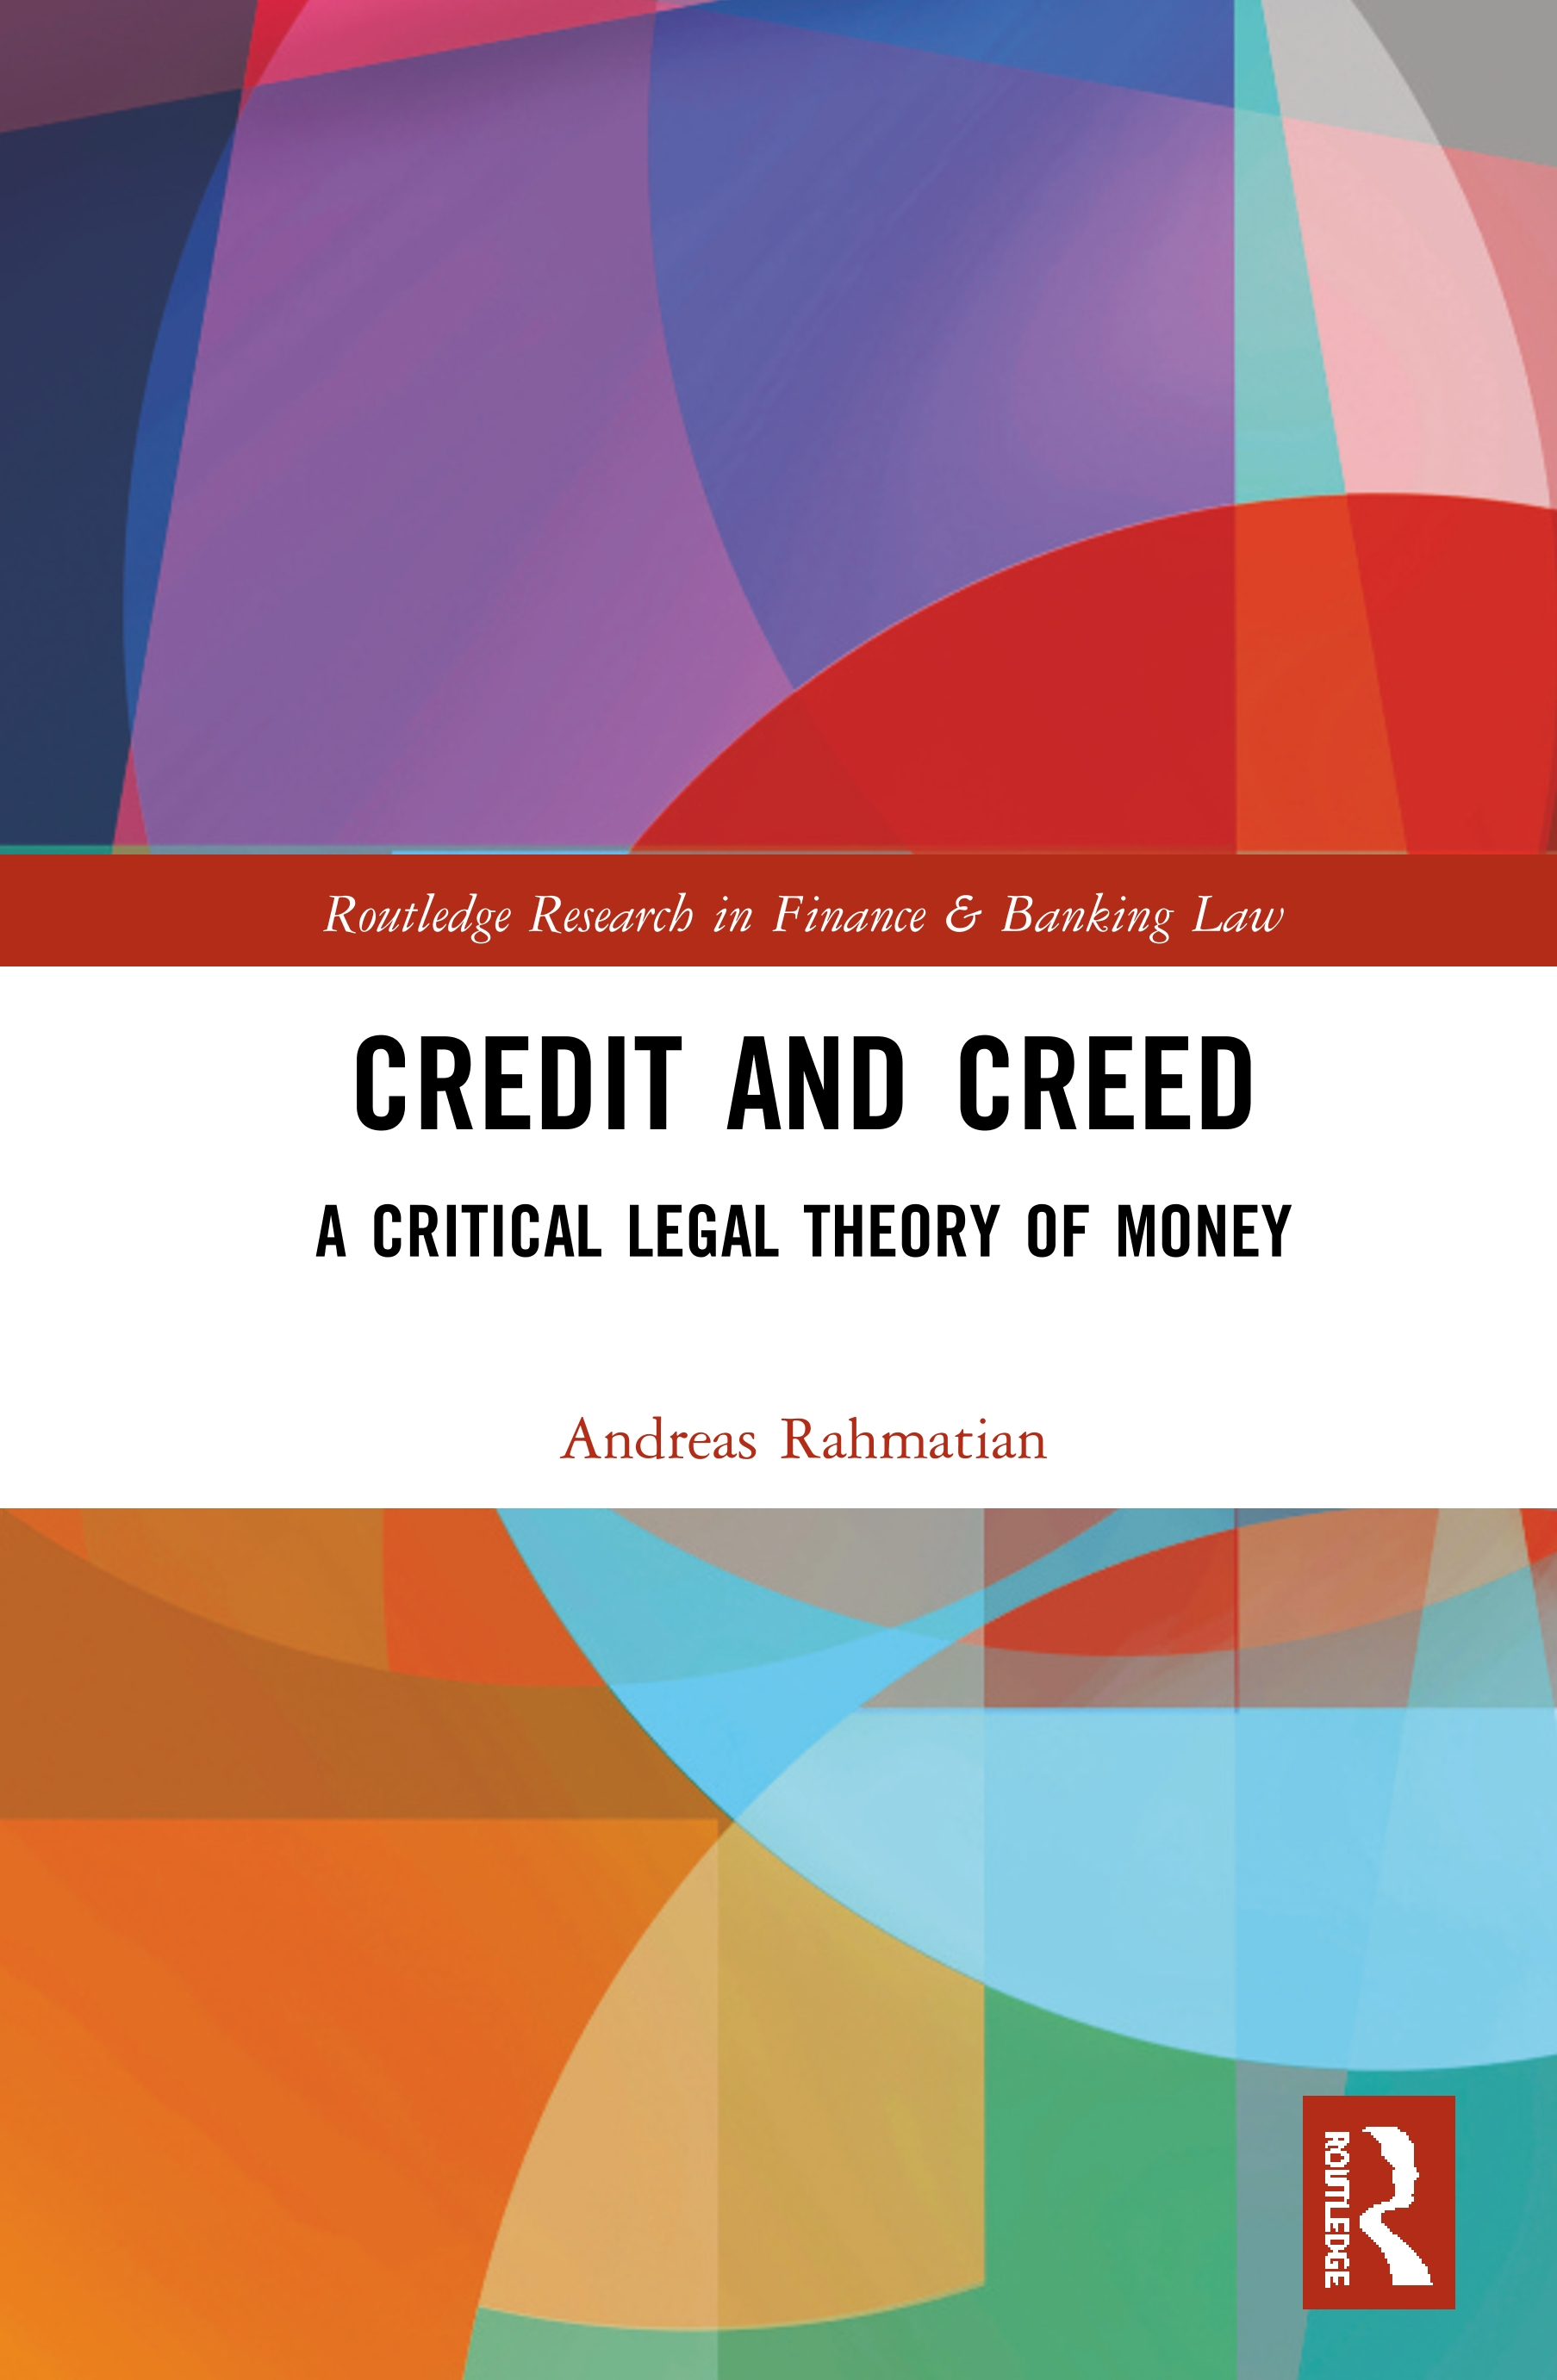 Credit and Creed: A Critical Legal Theory of Money book cover